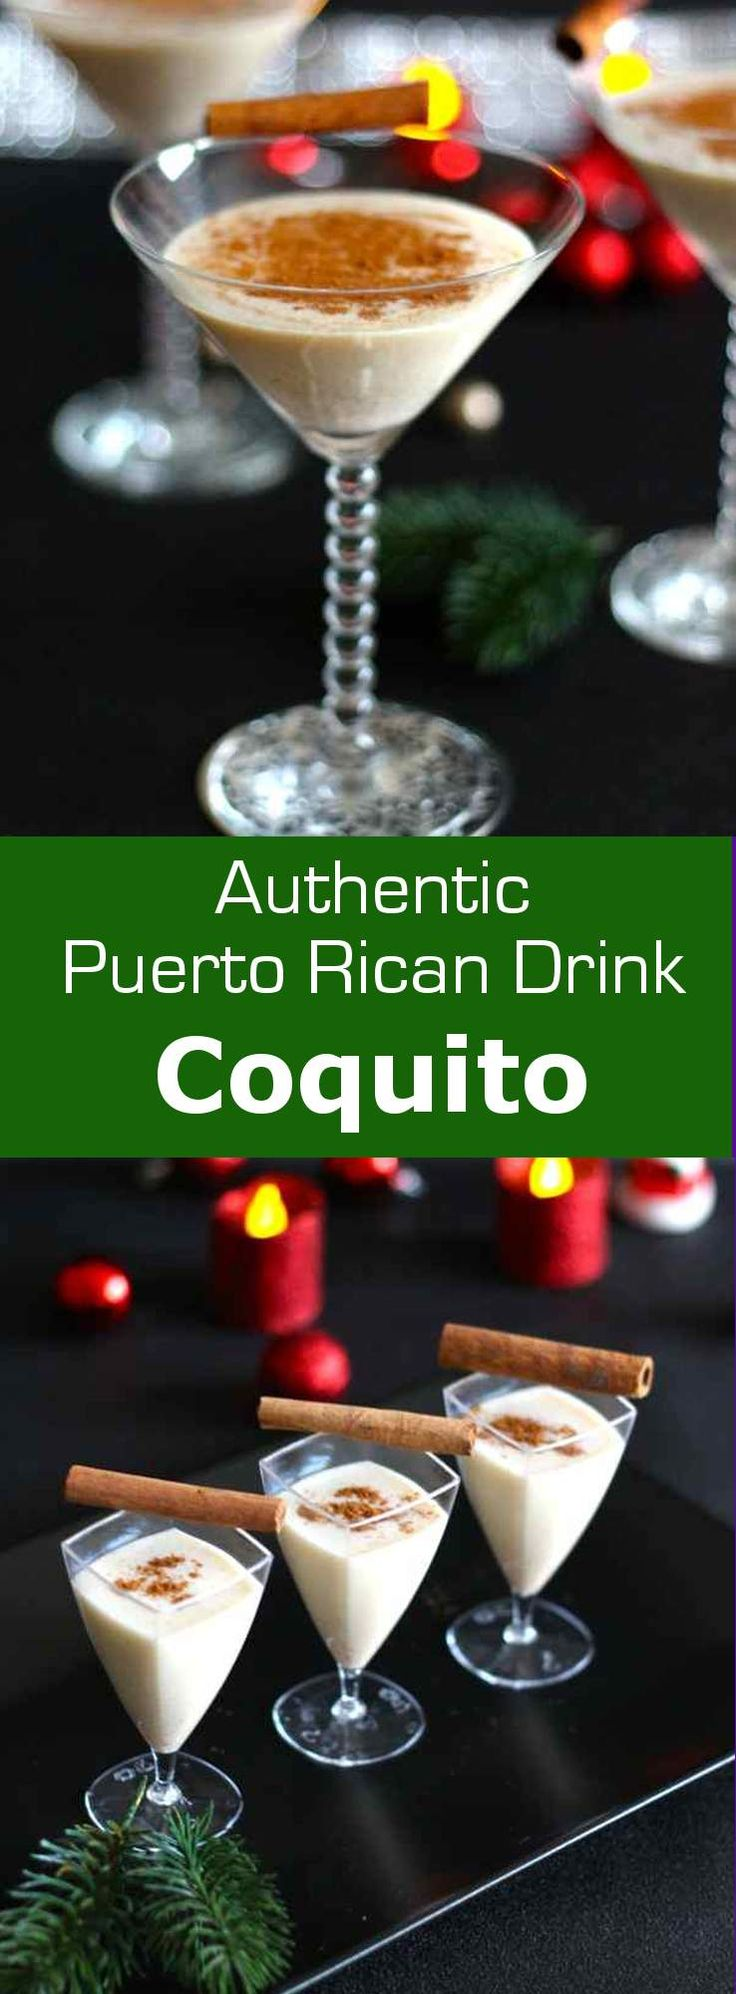 Coquito is the traditional Puerto Rican Christmas drink that is no other than an eggnog with rum flavored with coconut. #christmas #puertorico #drink #196flavors